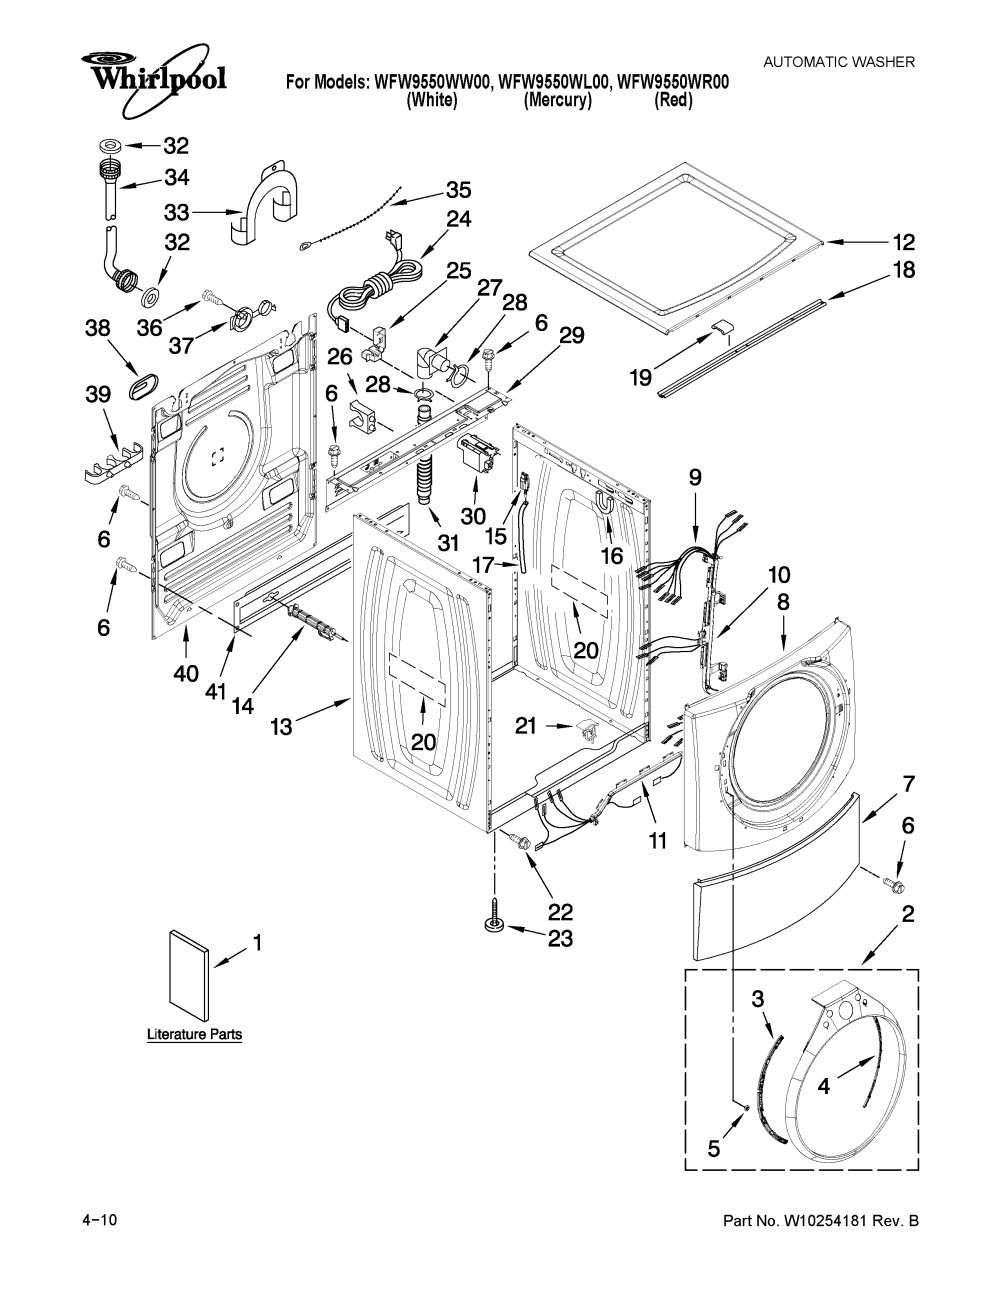 medium resolution of whirlpool wfw9550wl00 top and cabinet parts diagram